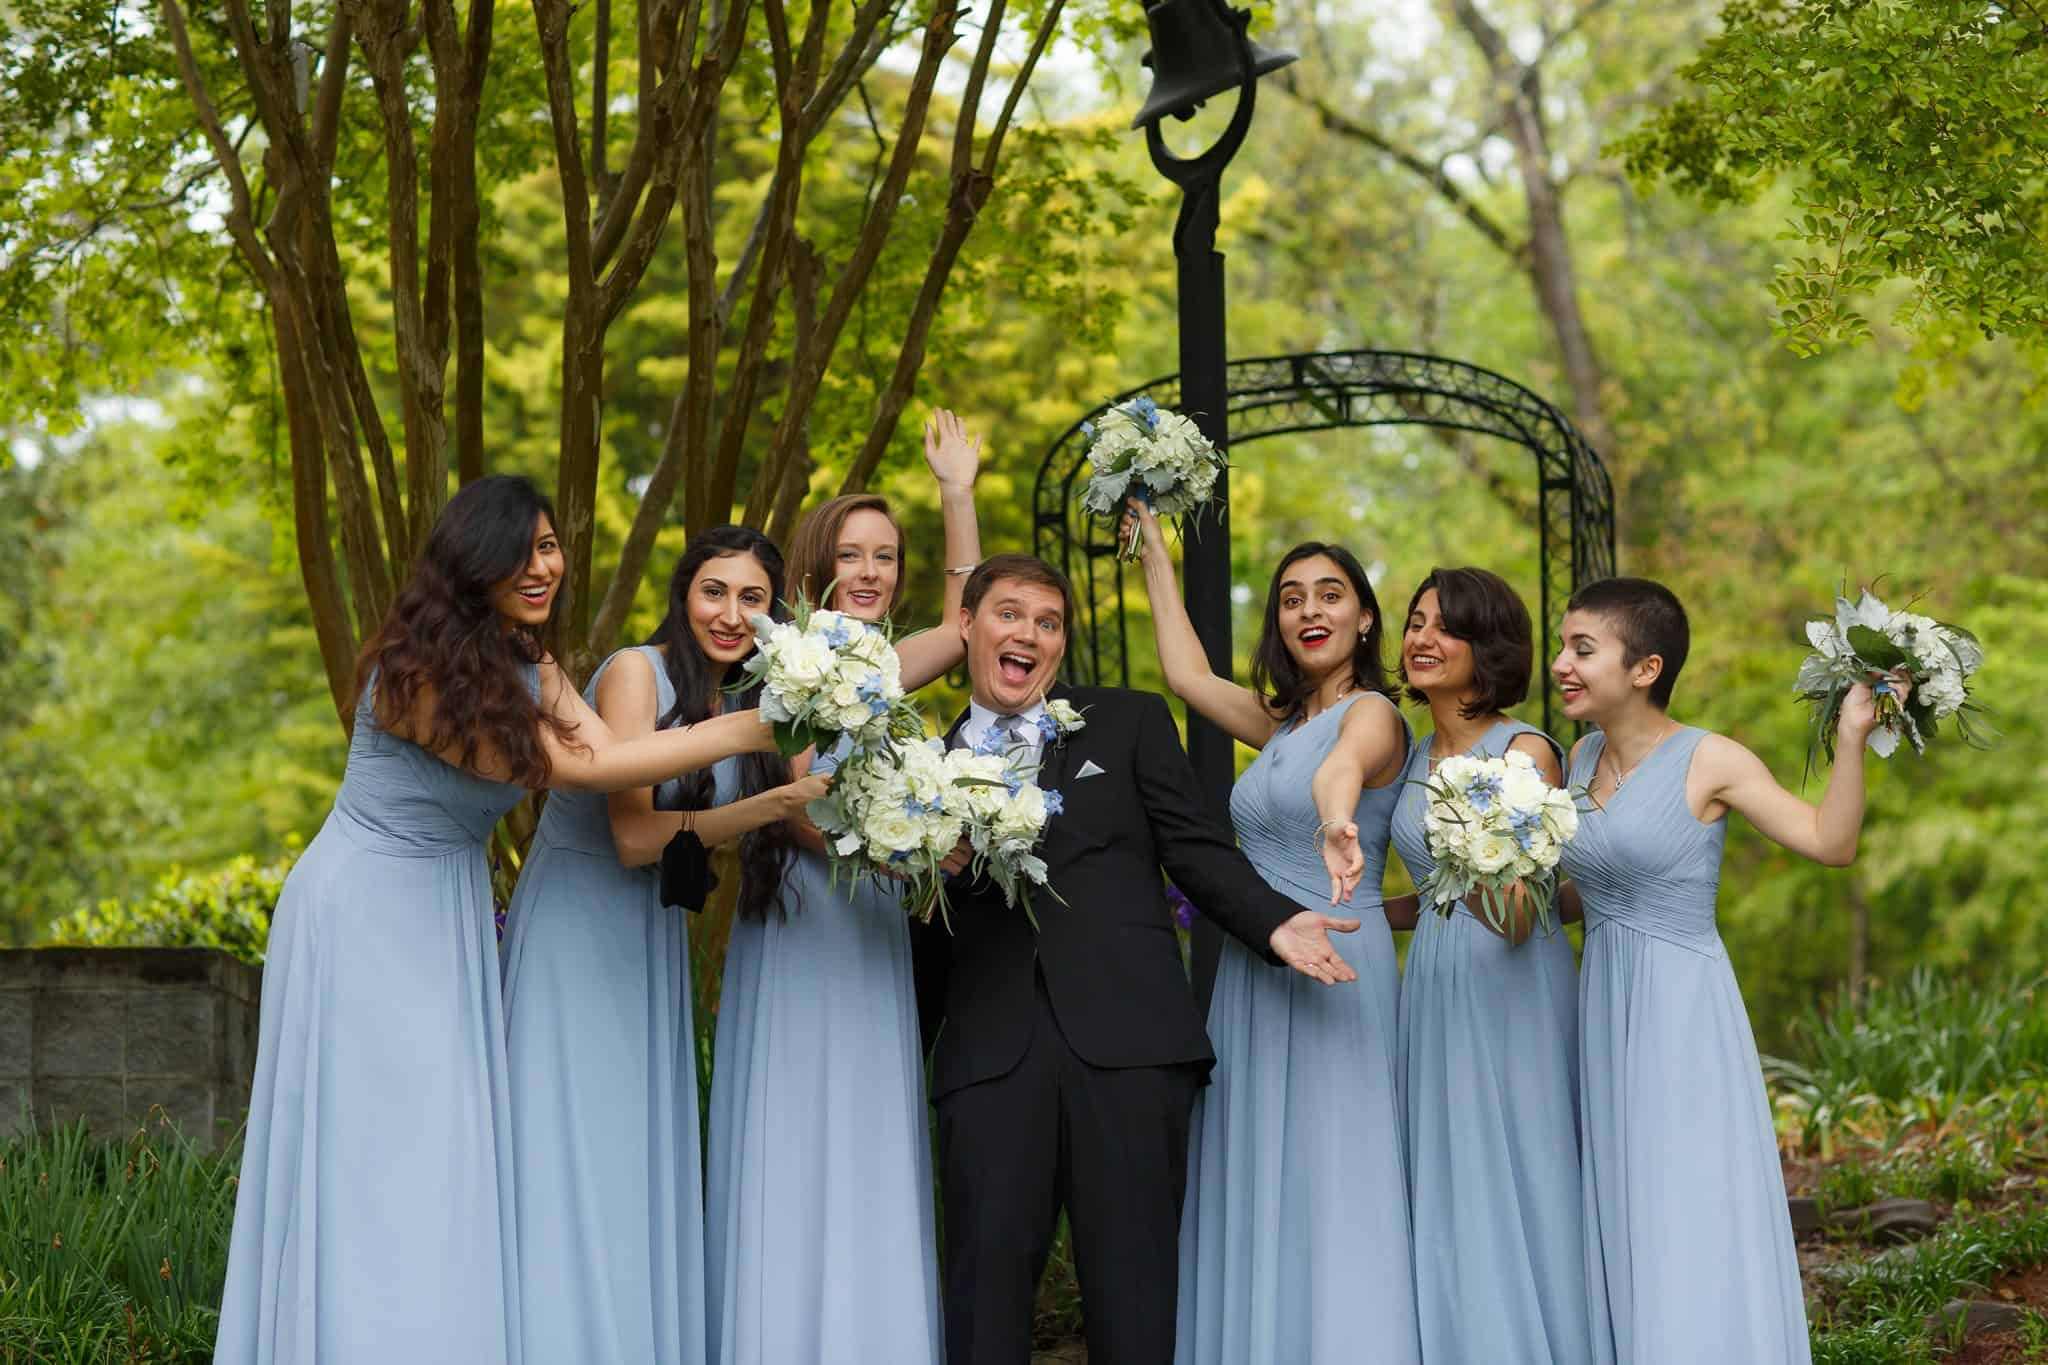 Bridesmaids in blue bridesmaids dresses holding bouquets in ivory and blue with groom in the center